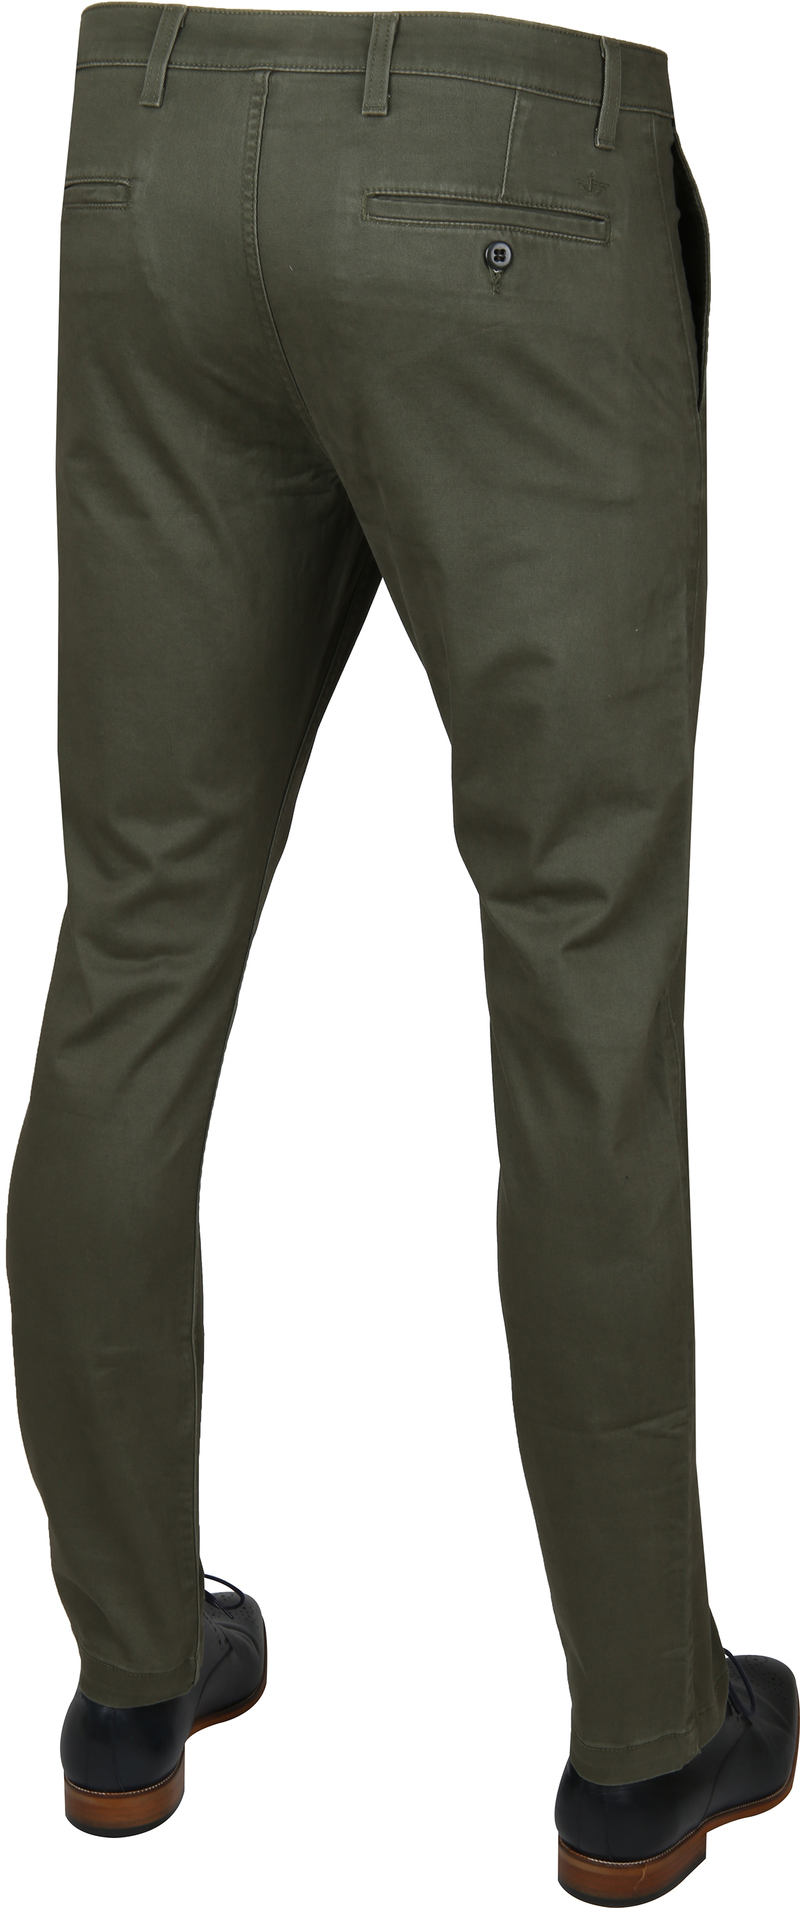 Dockers Skinny Tapered Groen foto 3